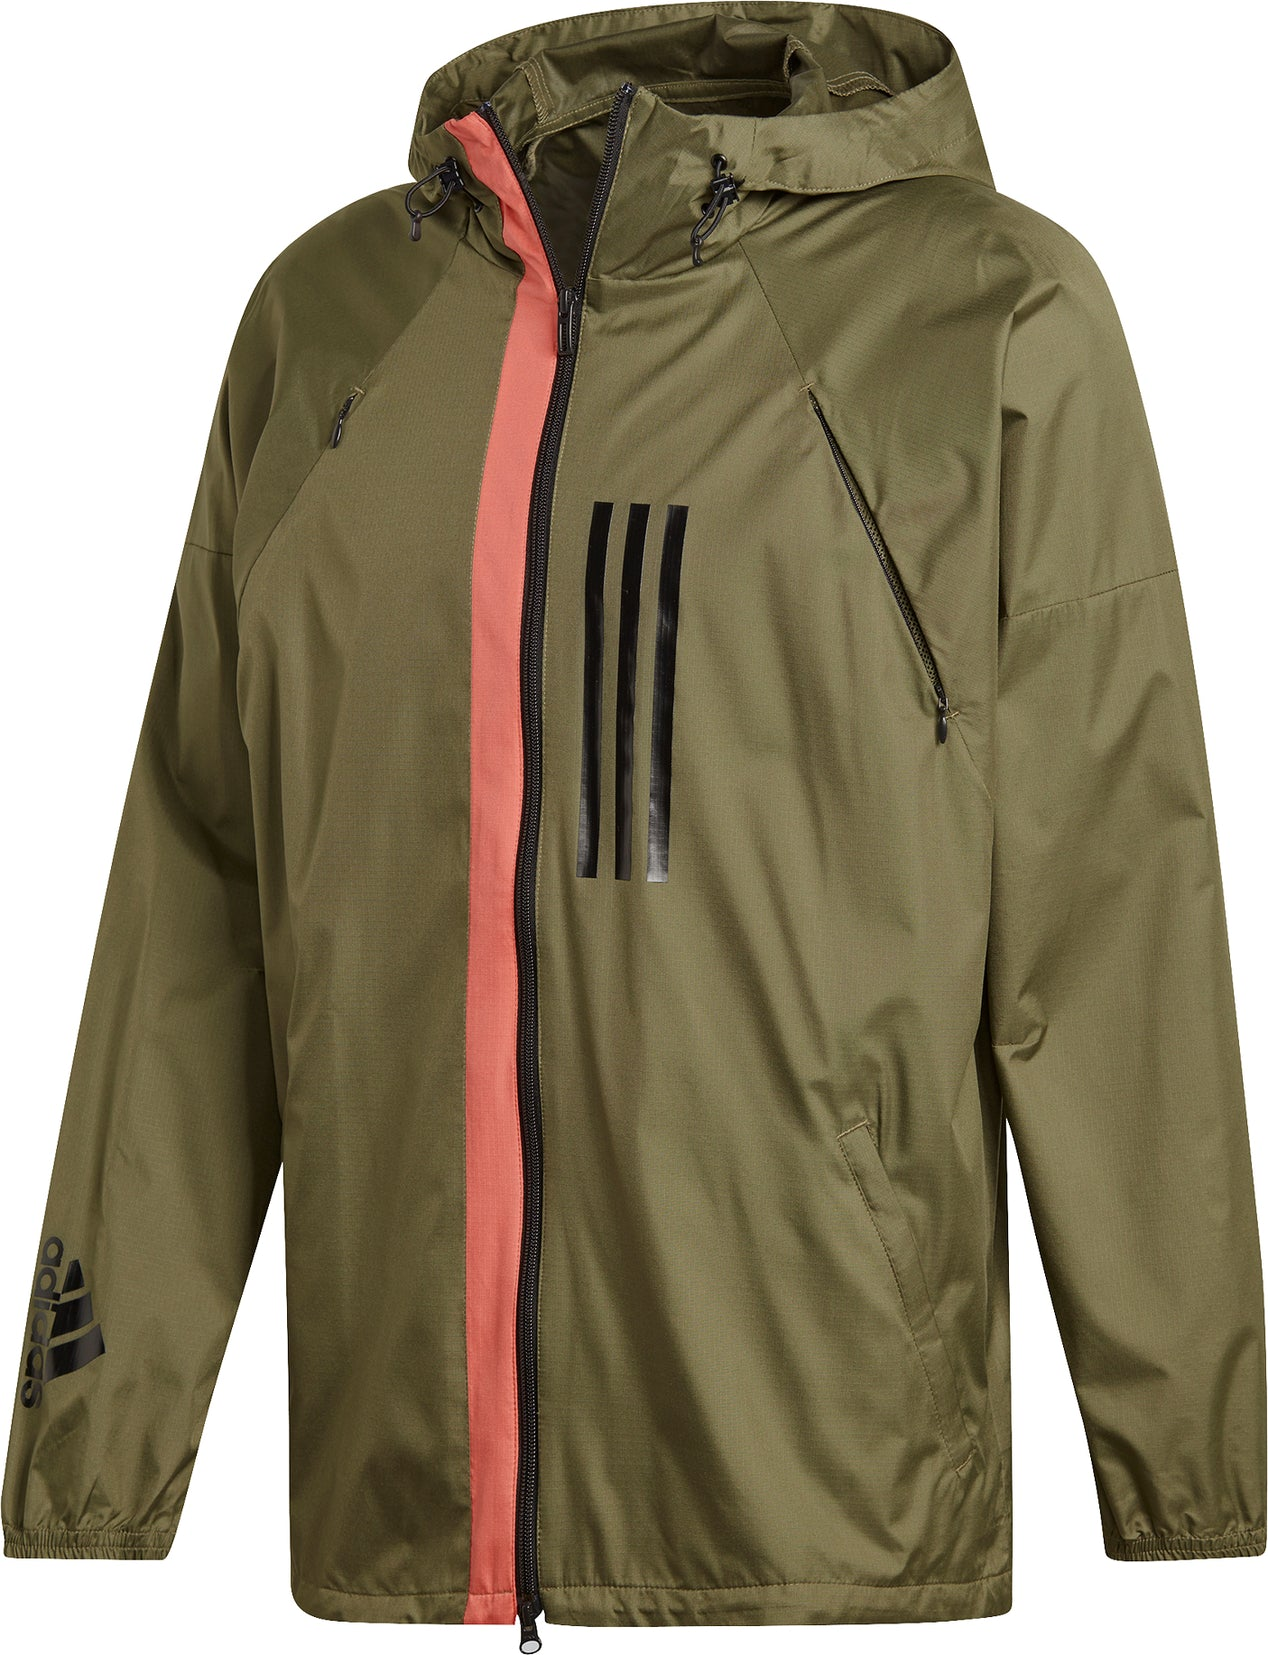 22c0483d1 ID WIND Jacket - Men's